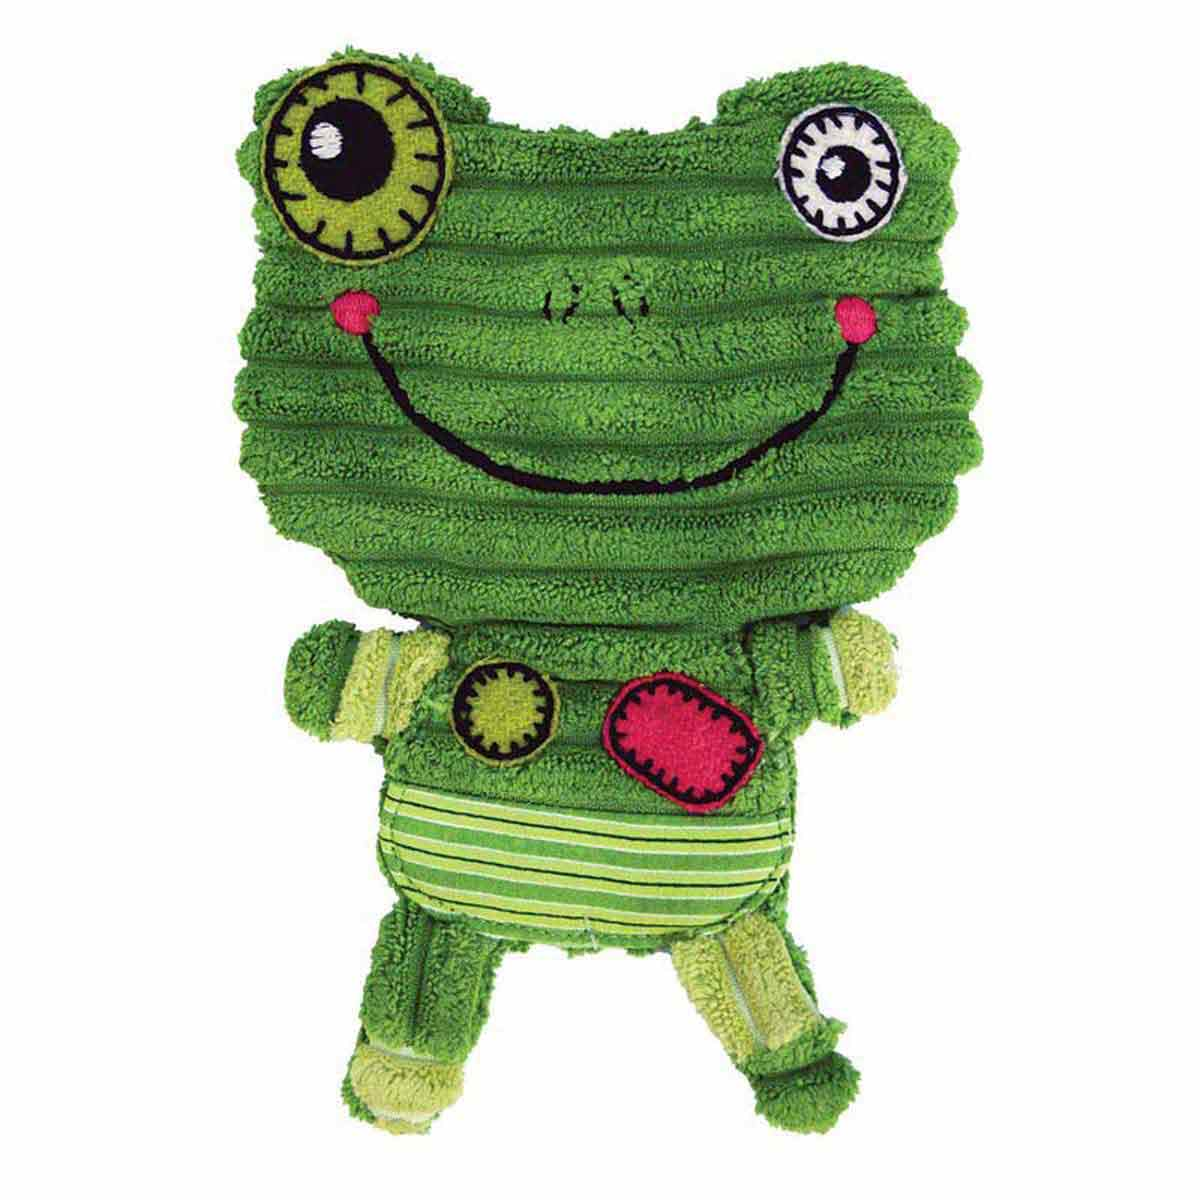 Medium KONG Romperz Frog for Dogs - 7.75 inches